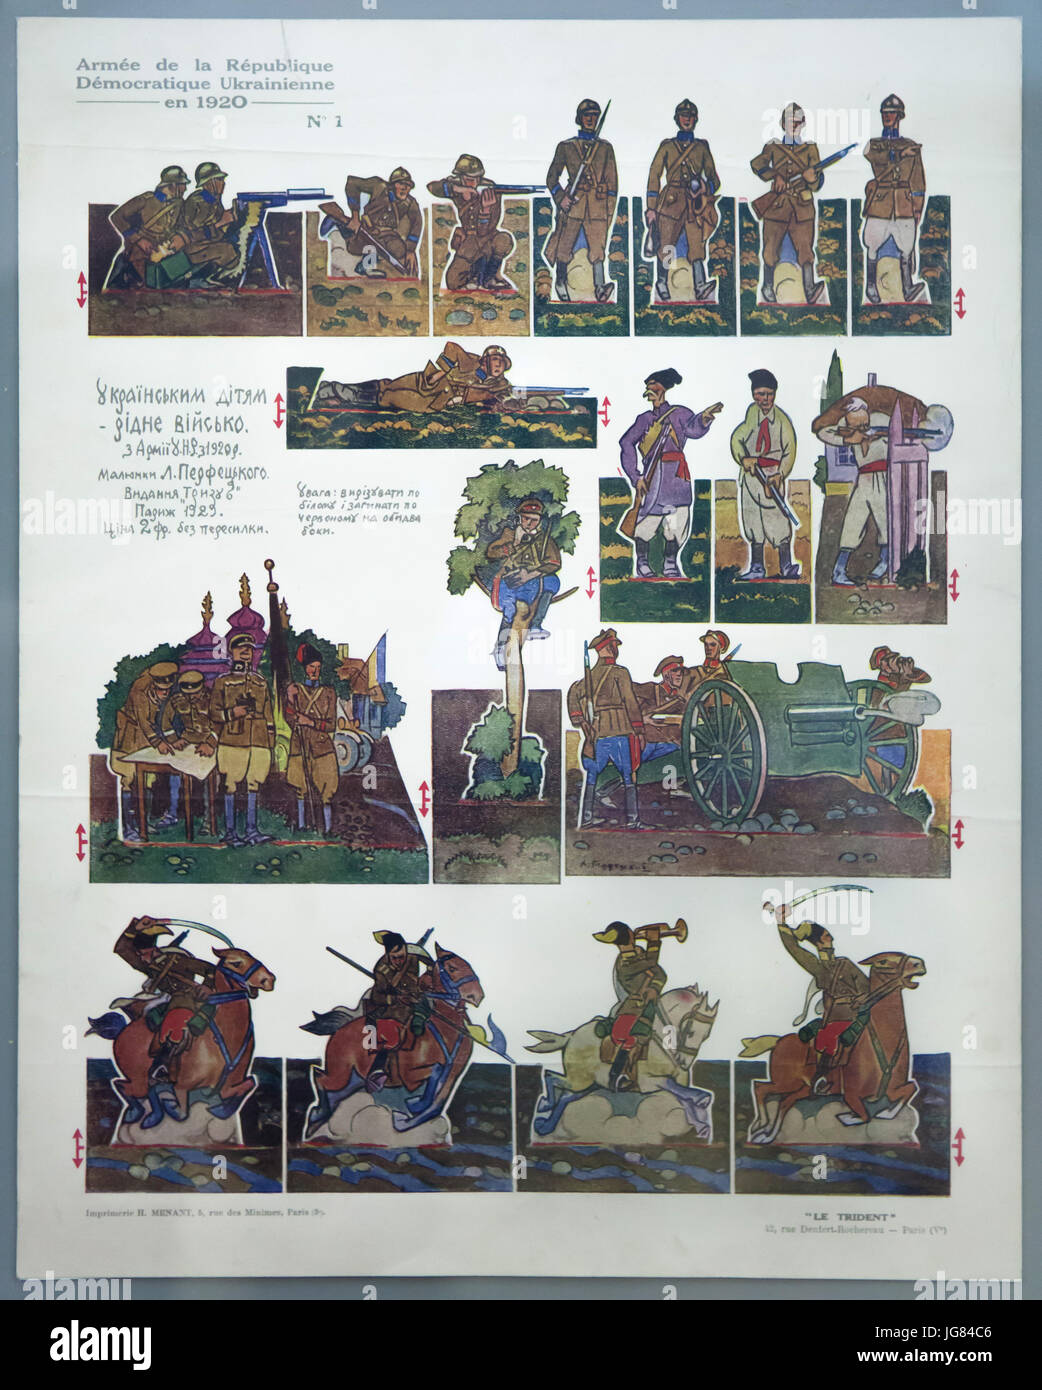 Army of the Ukrainian People's Republic (Ukrainian National Army) in 1920. Paper toy designed by Ukrainian painter - Stock Image